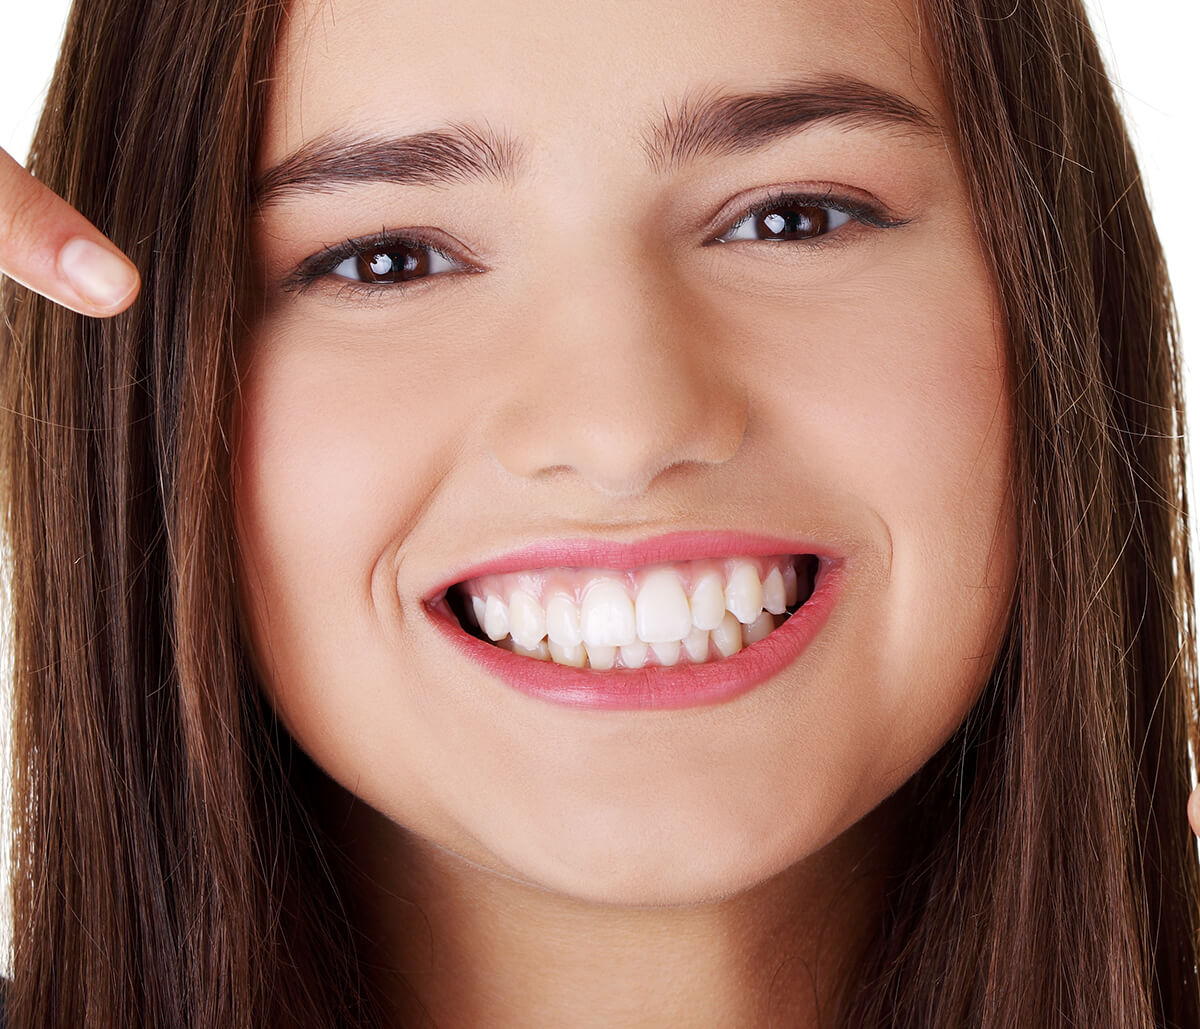 Get Professional Teeth Whitening services in Charleston SC Area